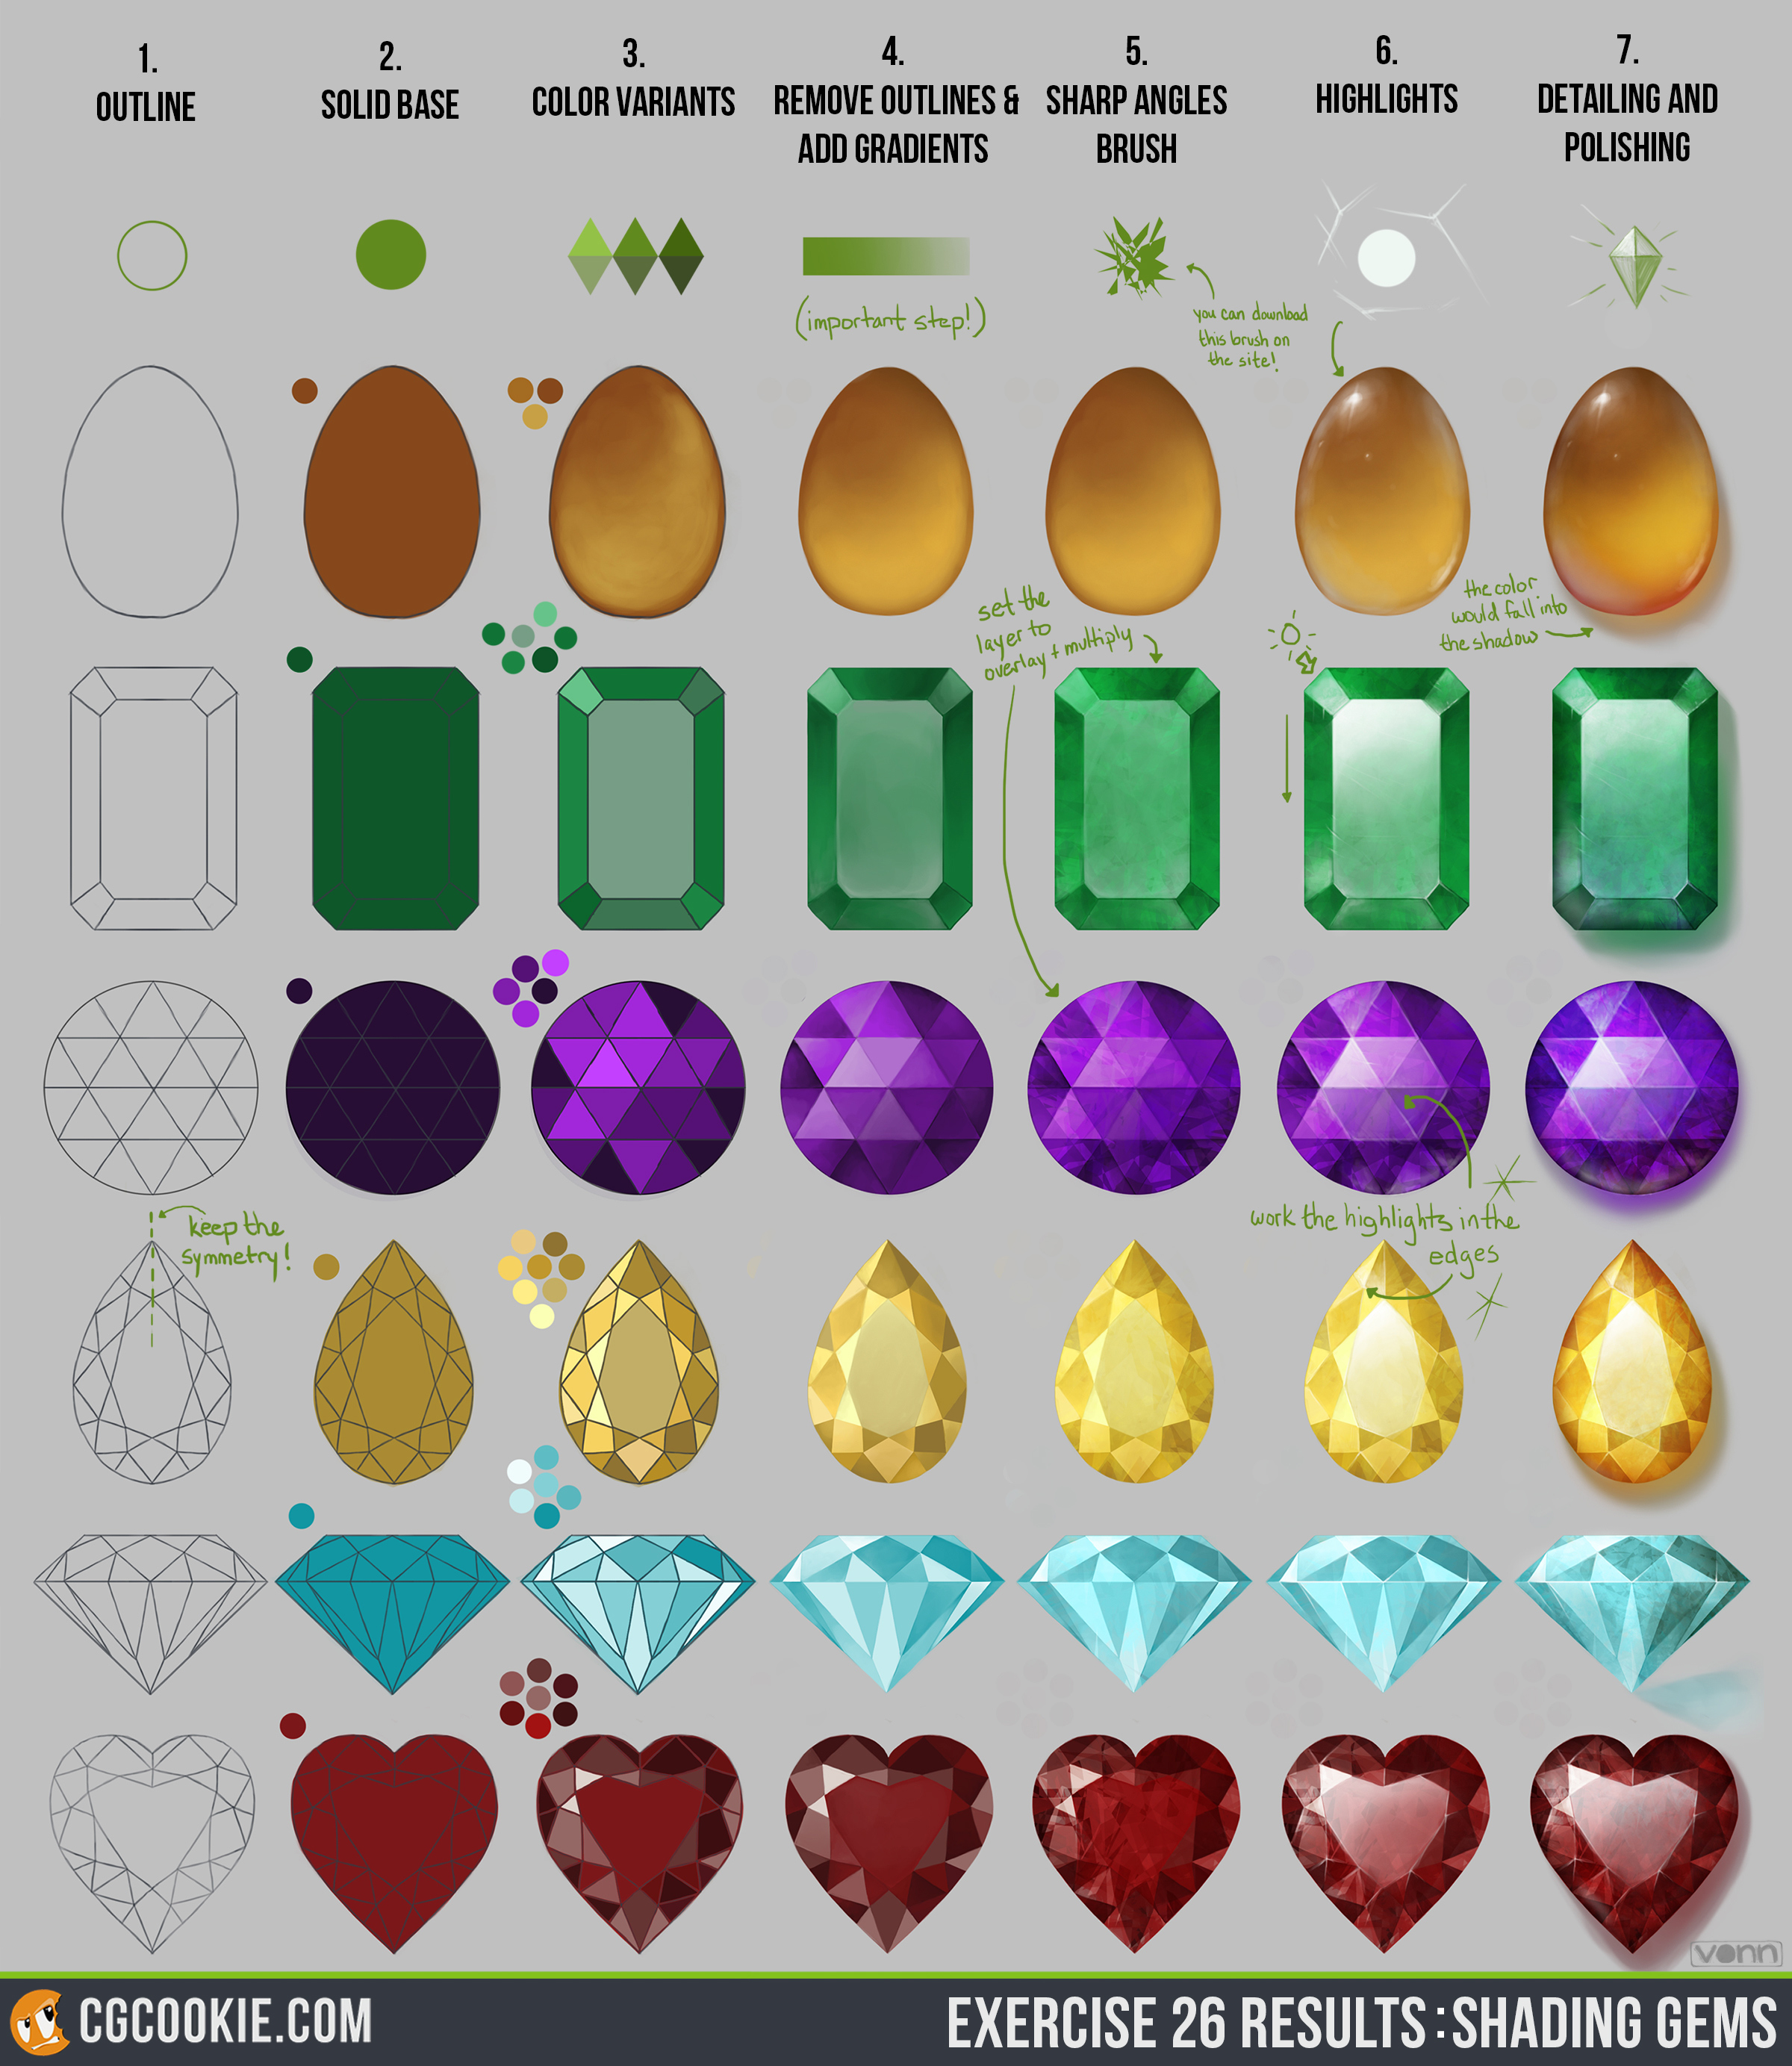 Shading gems cg cookie exercise26results nvjuhfo Images